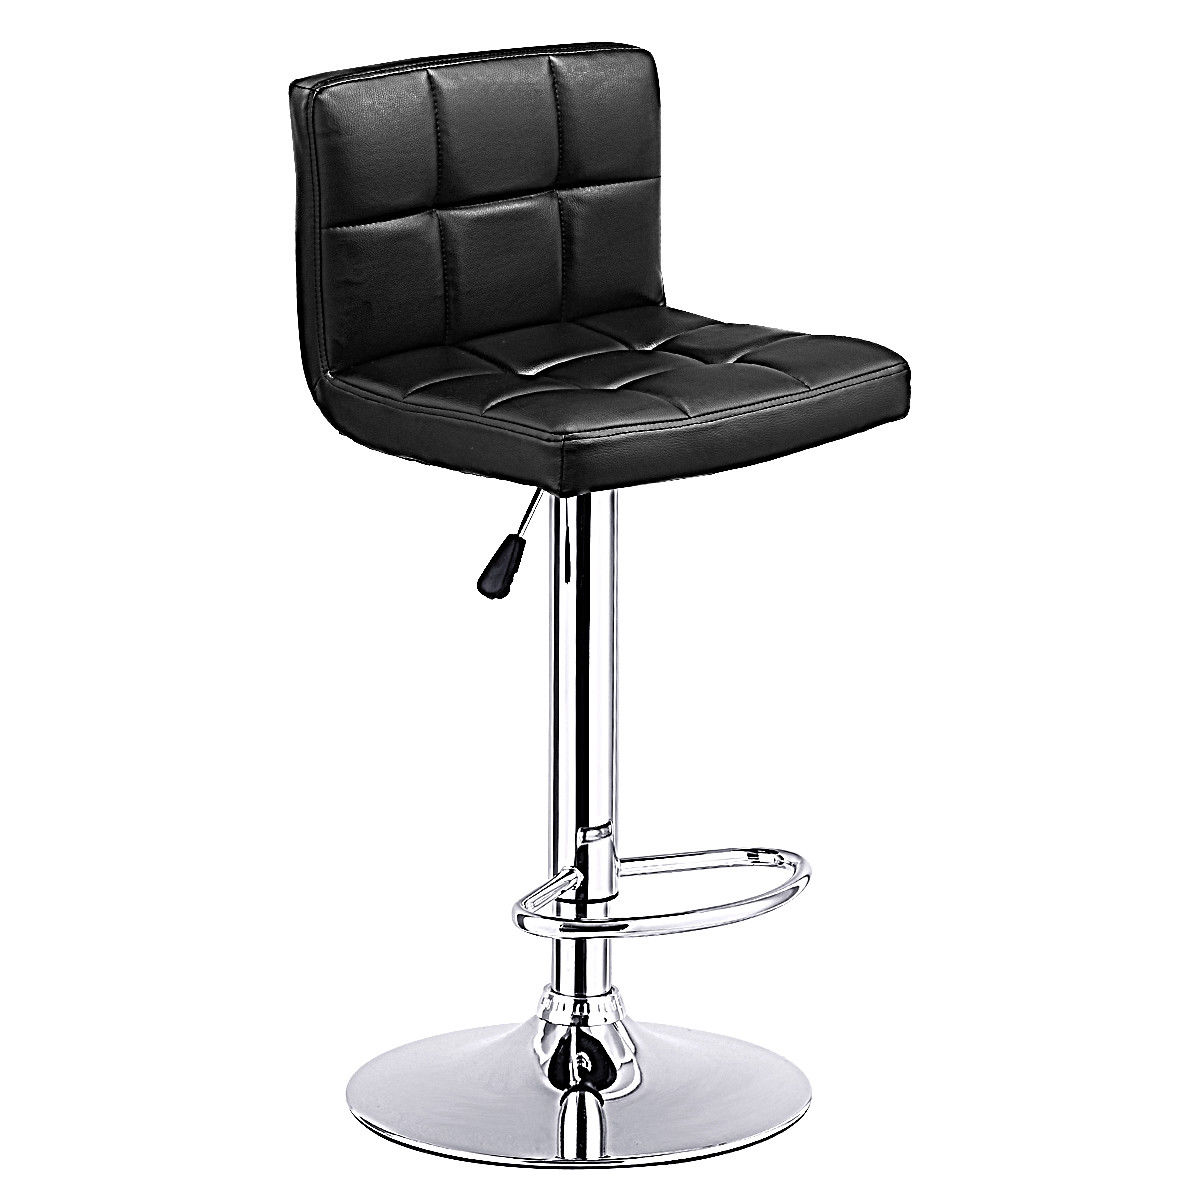 Costway 1 PC Bar Stool Swivel Adjustable PU Leather Bar Stools Bistro Pub Chair Black by Costway